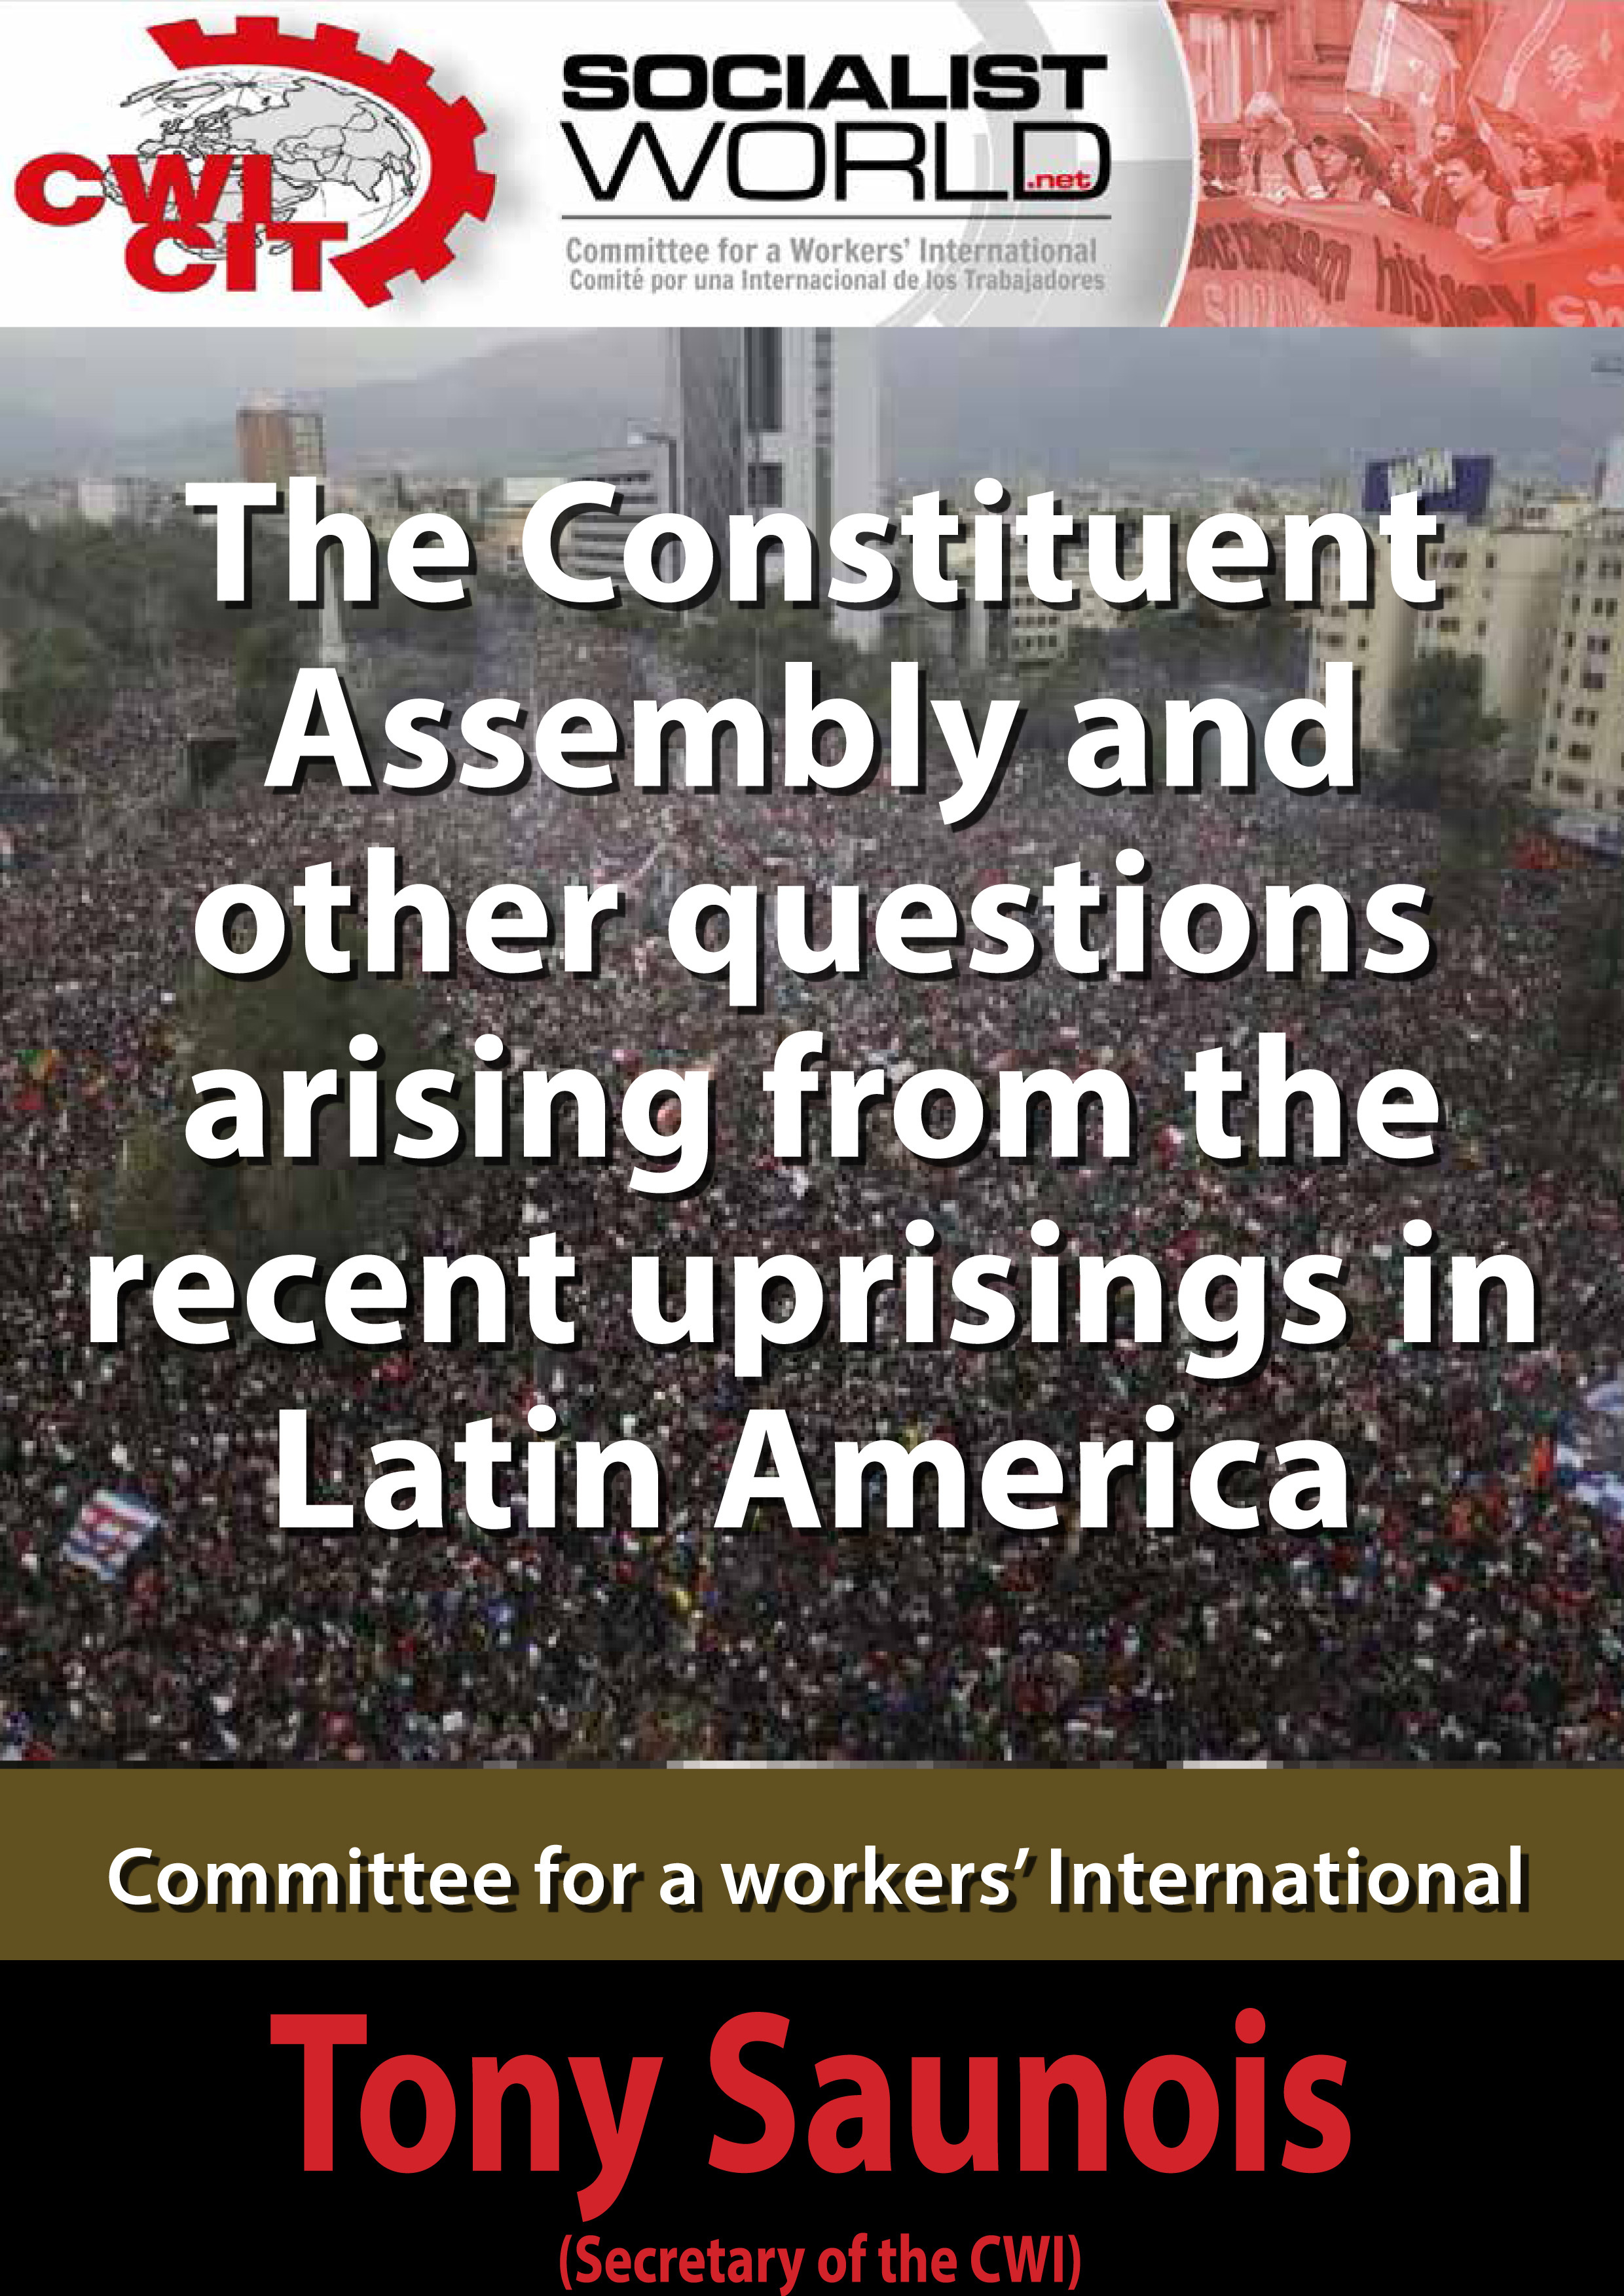 ConstituentAssembly